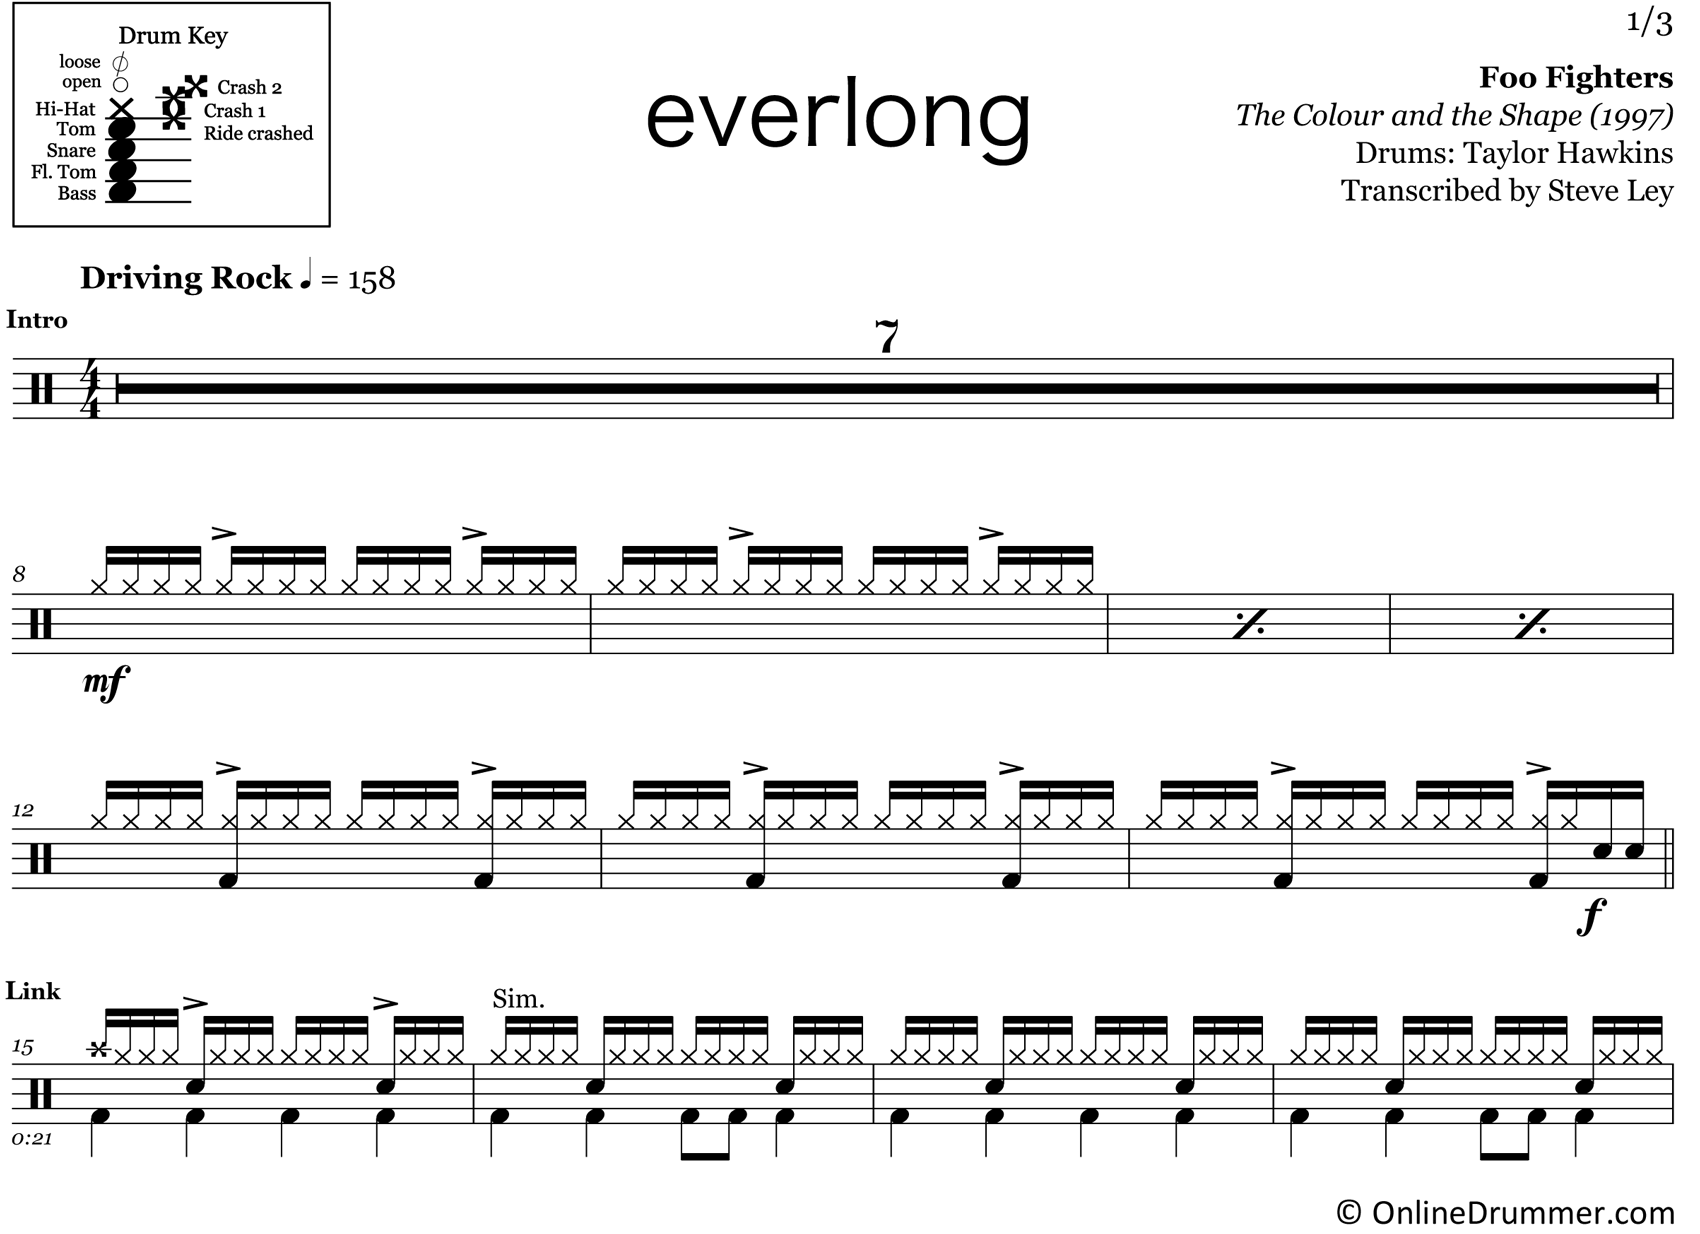 Everlong - Foo Fighters - Drum Sheet Music